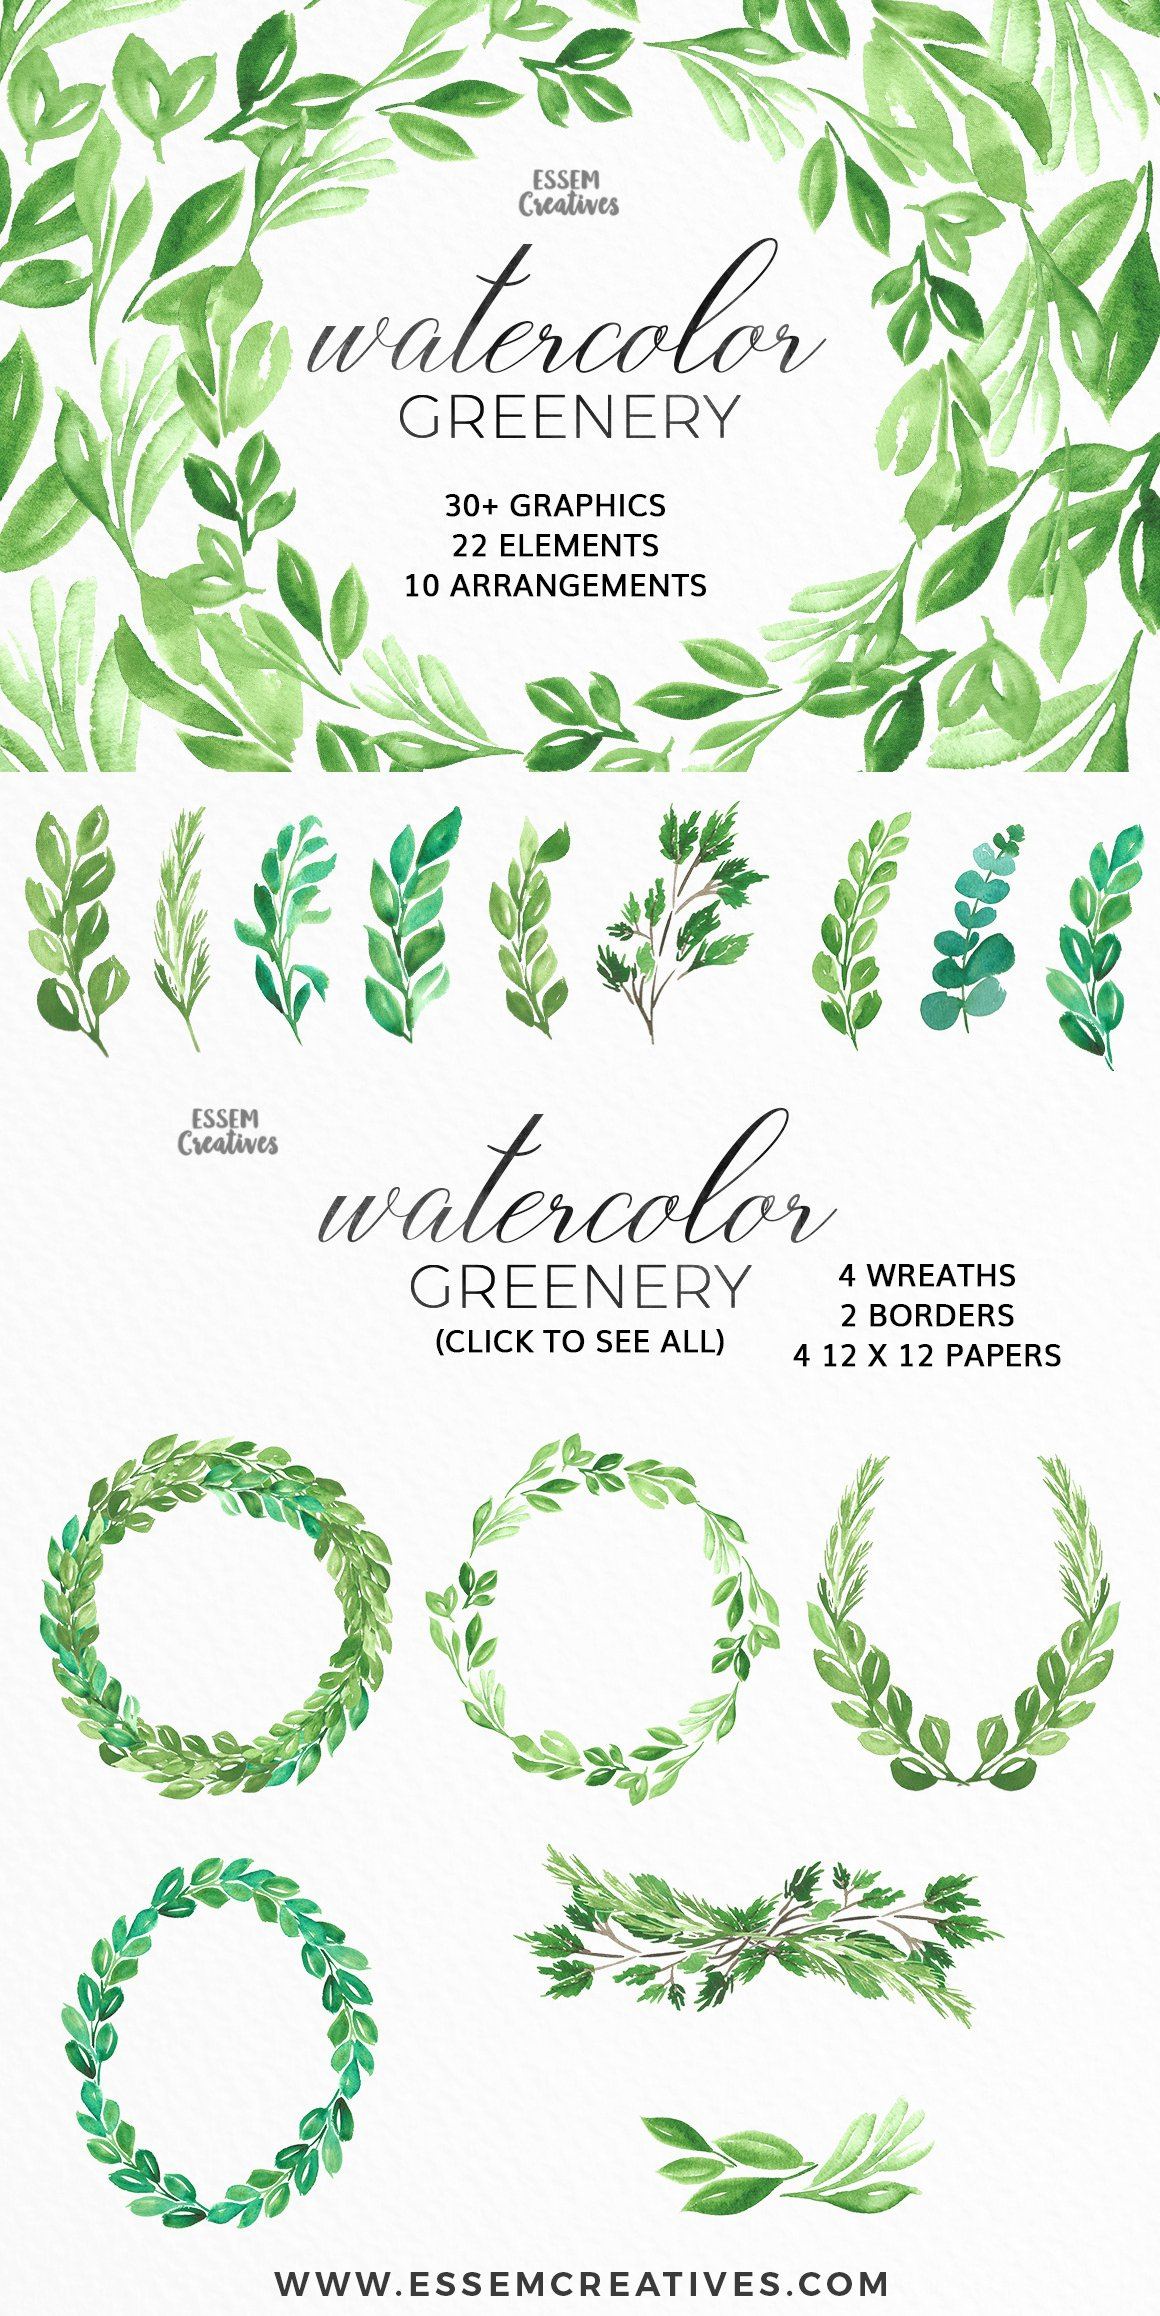 Watercolor greenery leaves clipart illustrations for Watercolor greenery